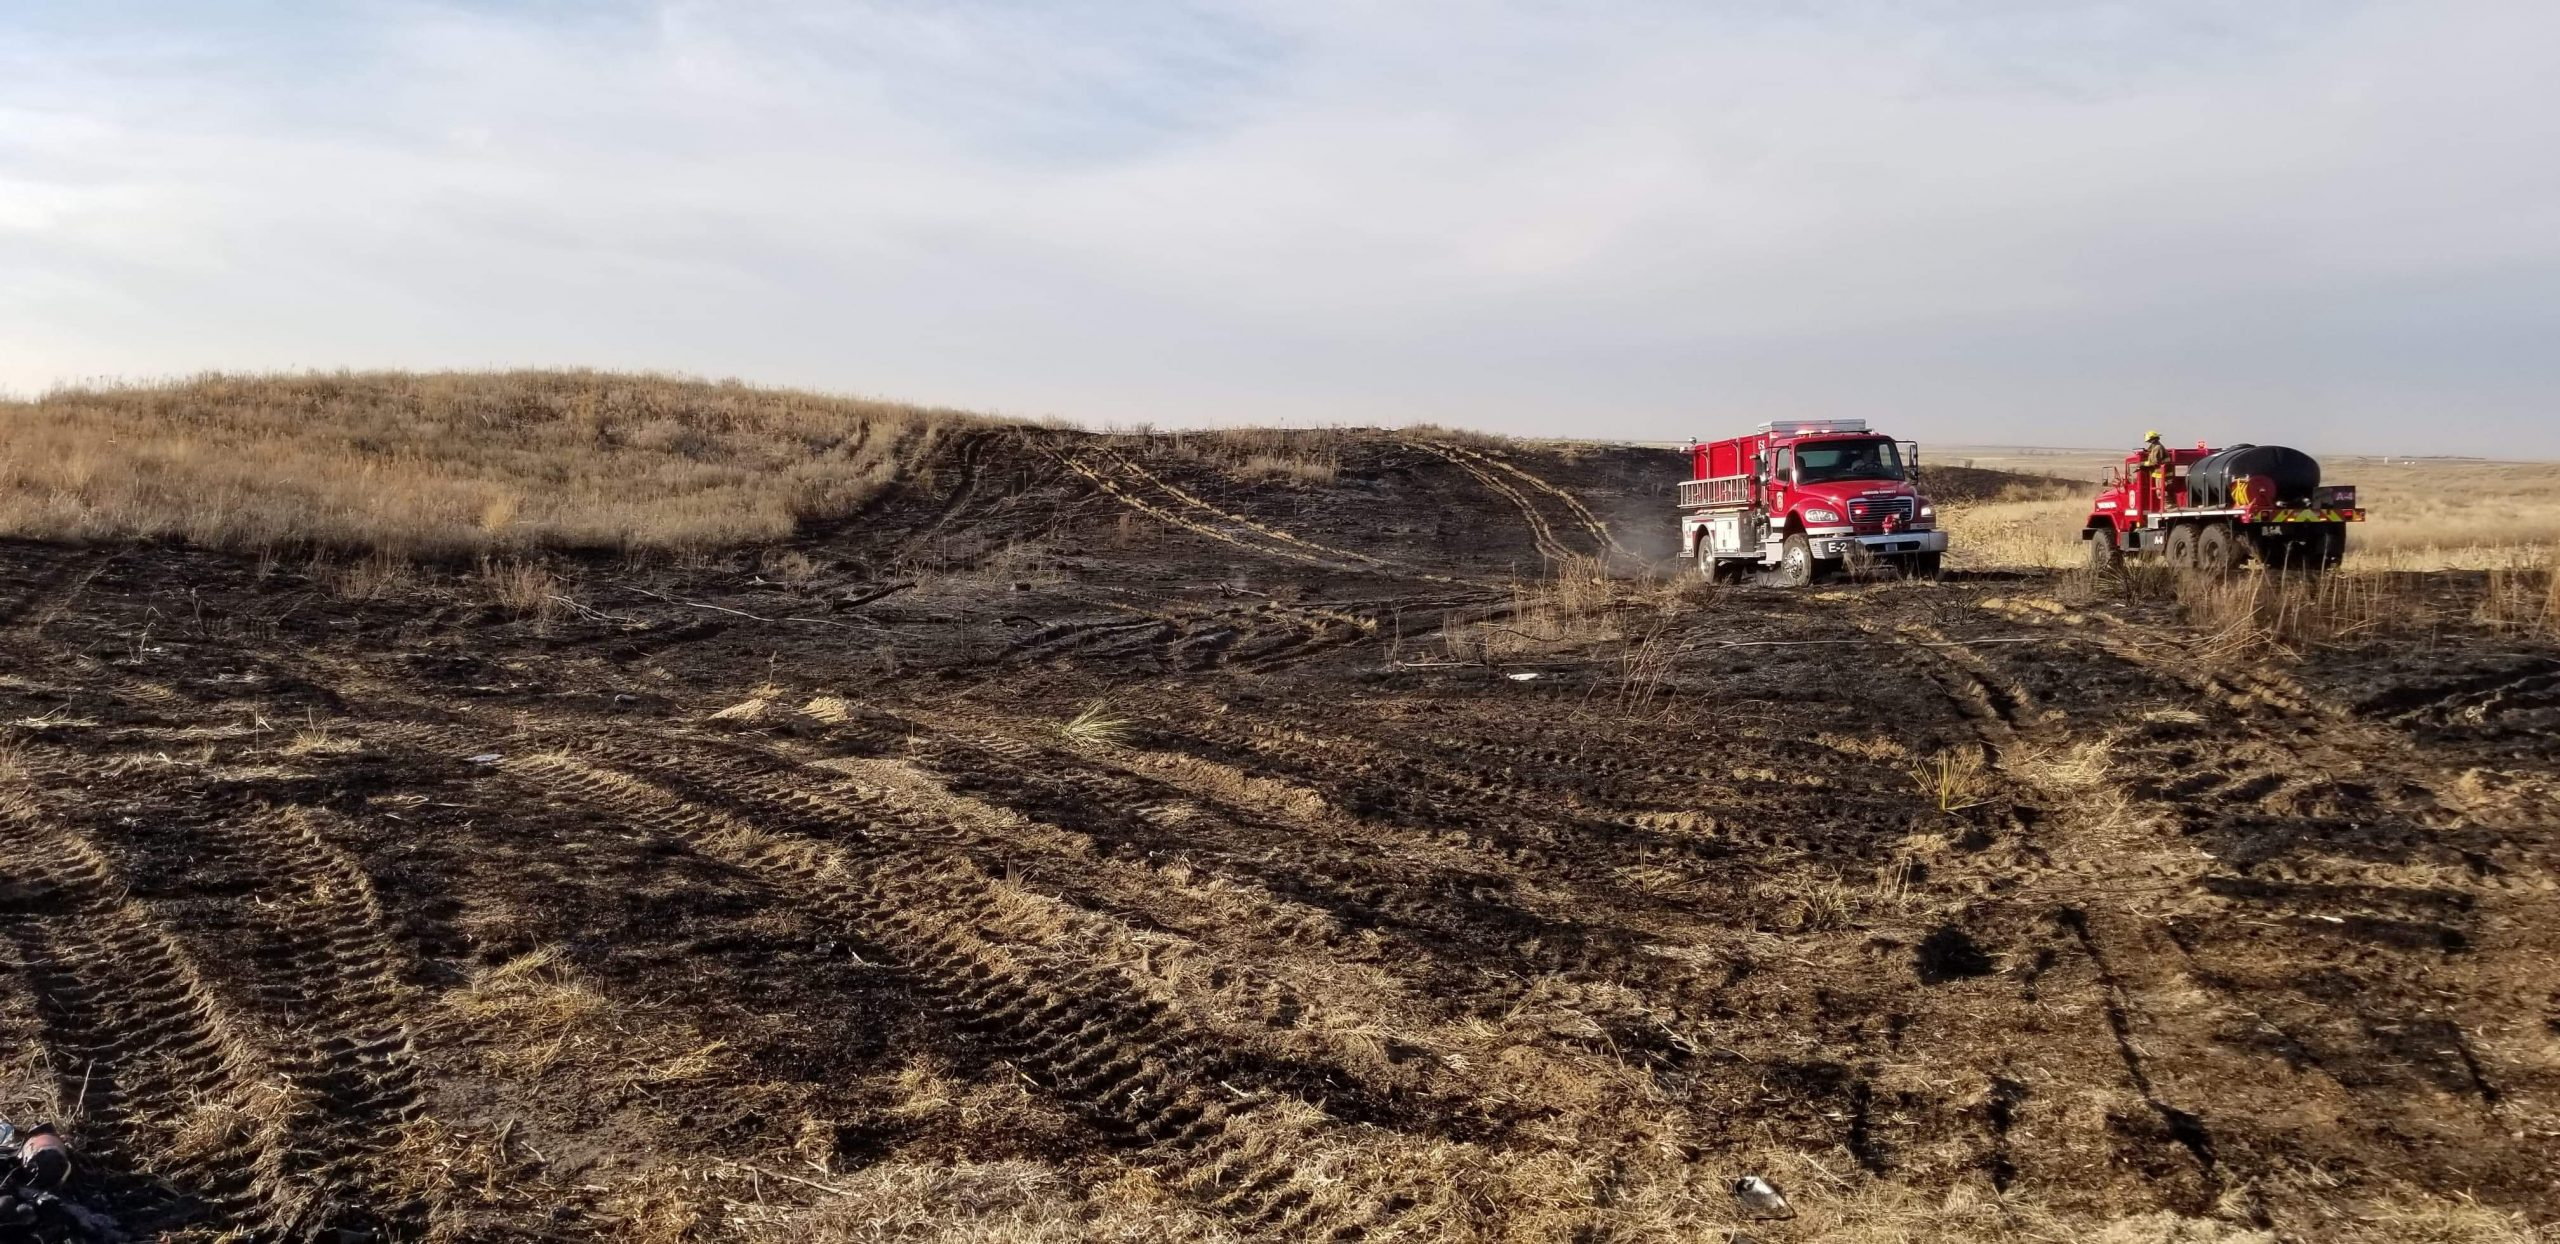 Seward County Firefighters Extinguish Vegetation Fire